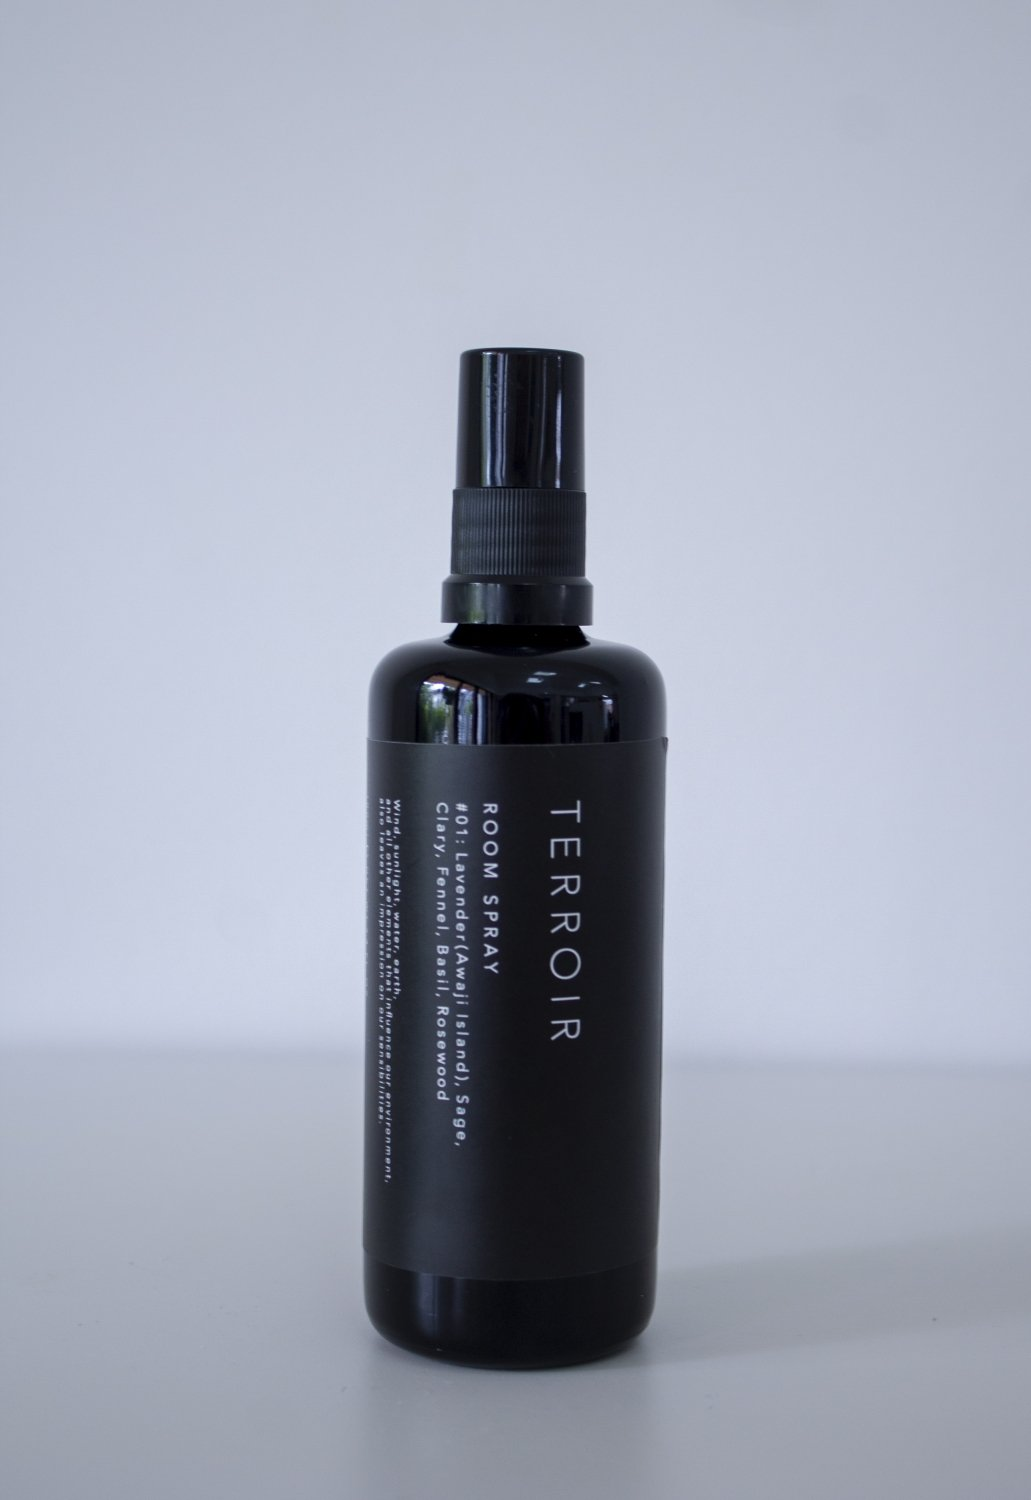 TERROIR -room spray 100ml